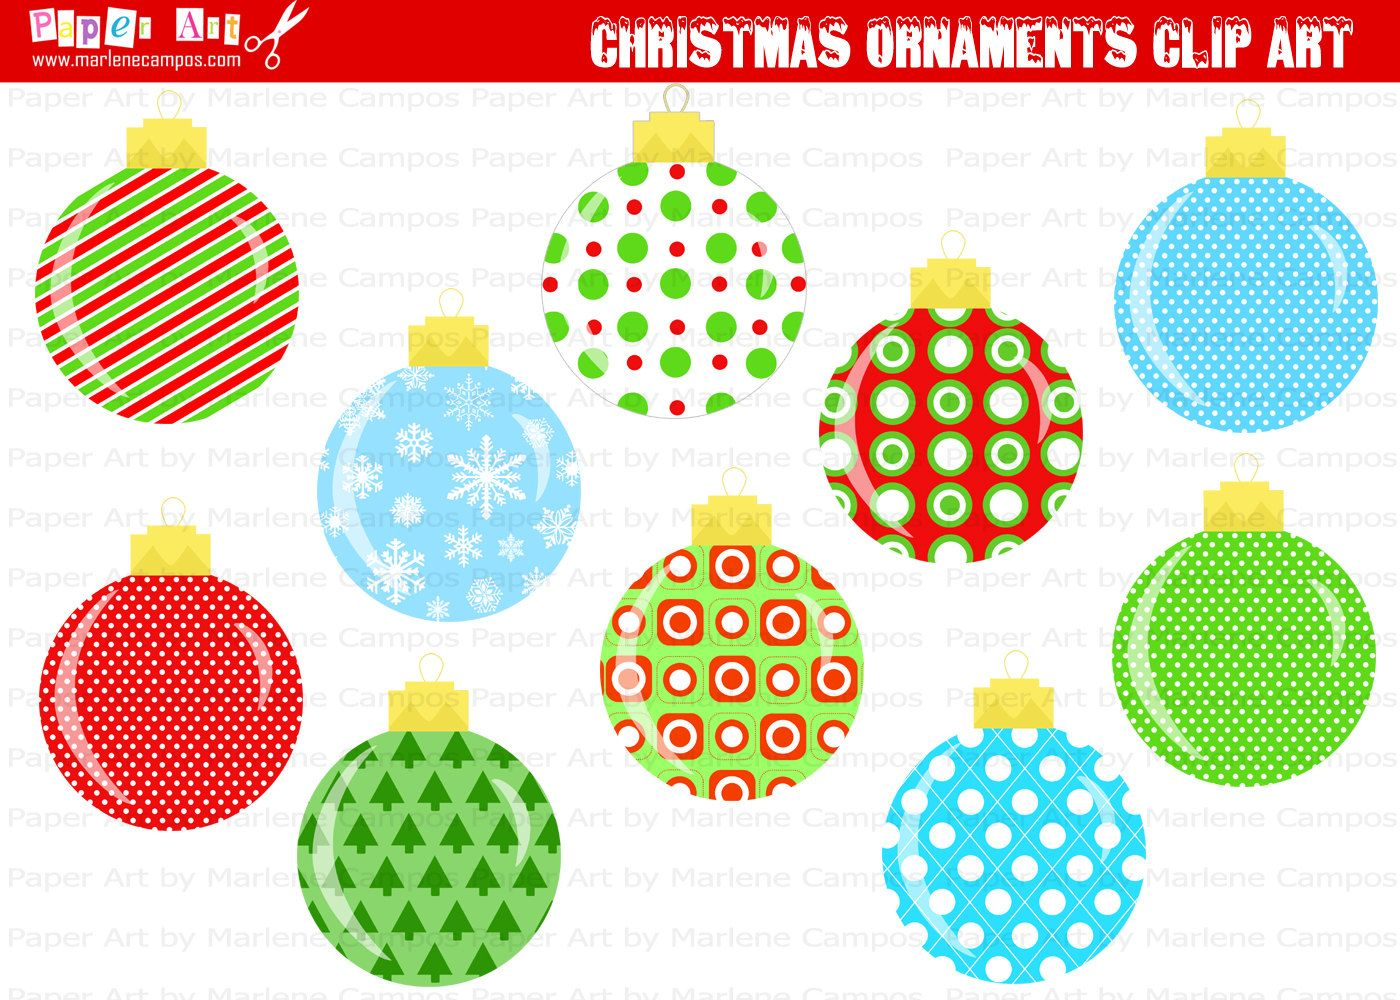 Bing Clipart Christmas Borders Inspirational Design On Home